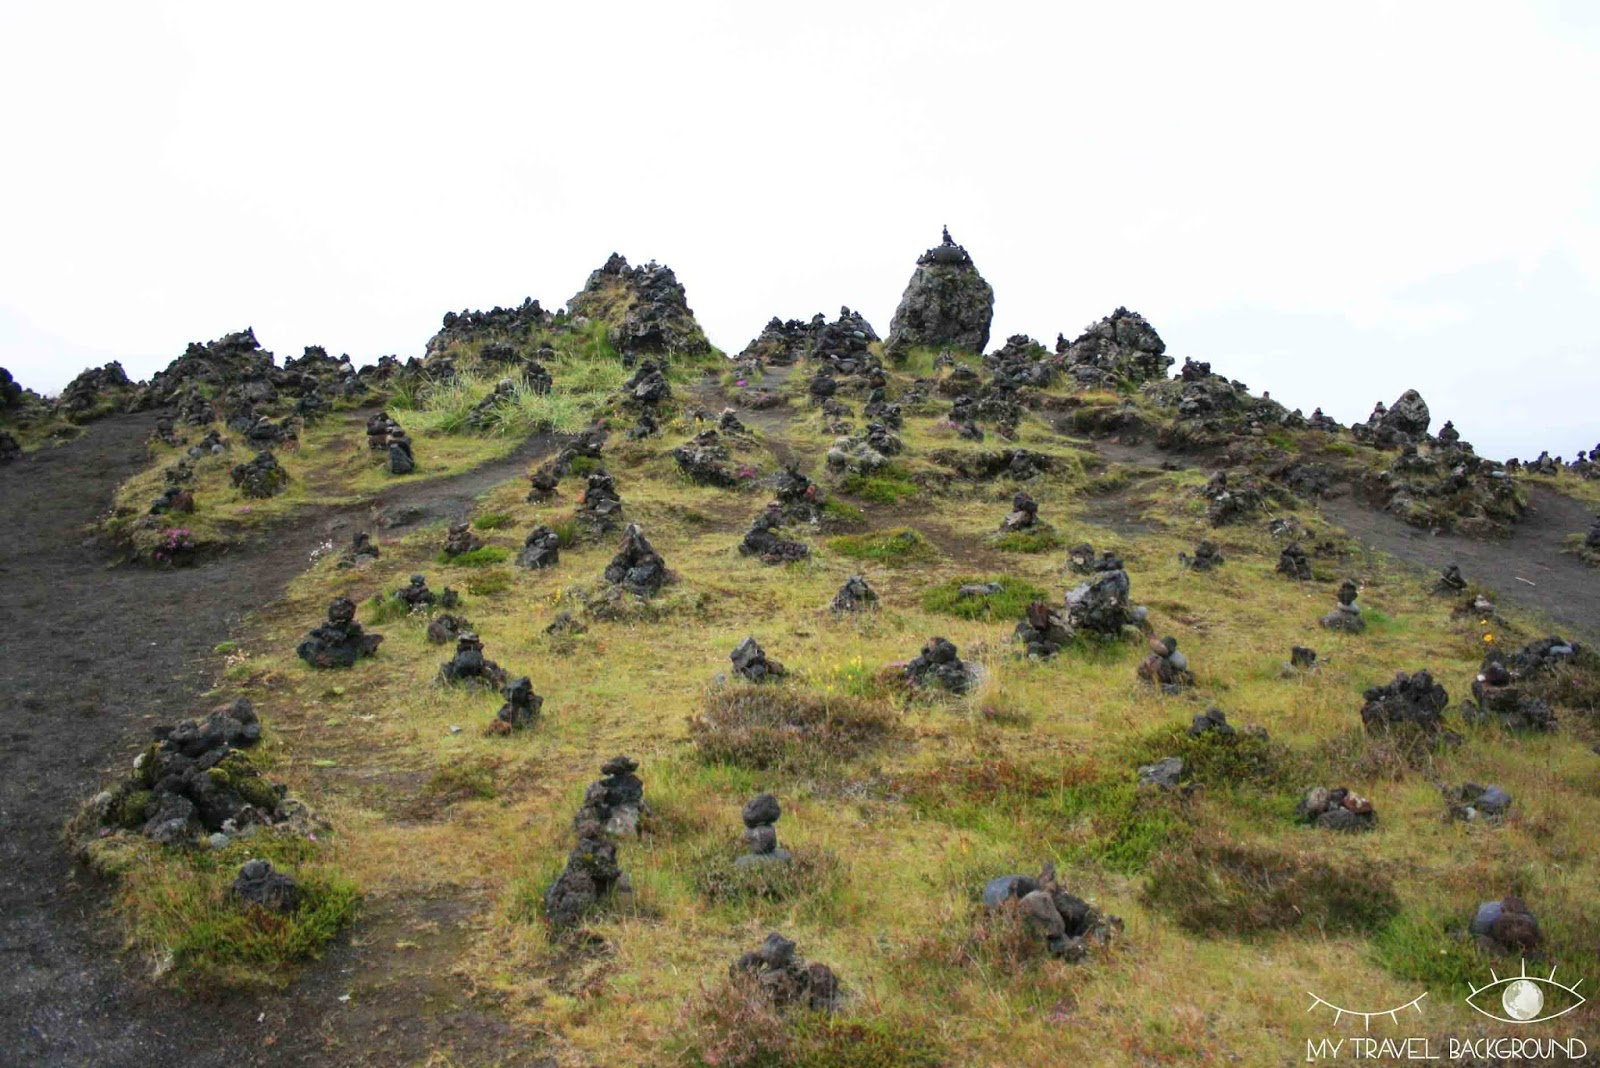 My Travel Background : le sud de l'Islande, de Vik à Höfn - les cairns de Laufskalavarda